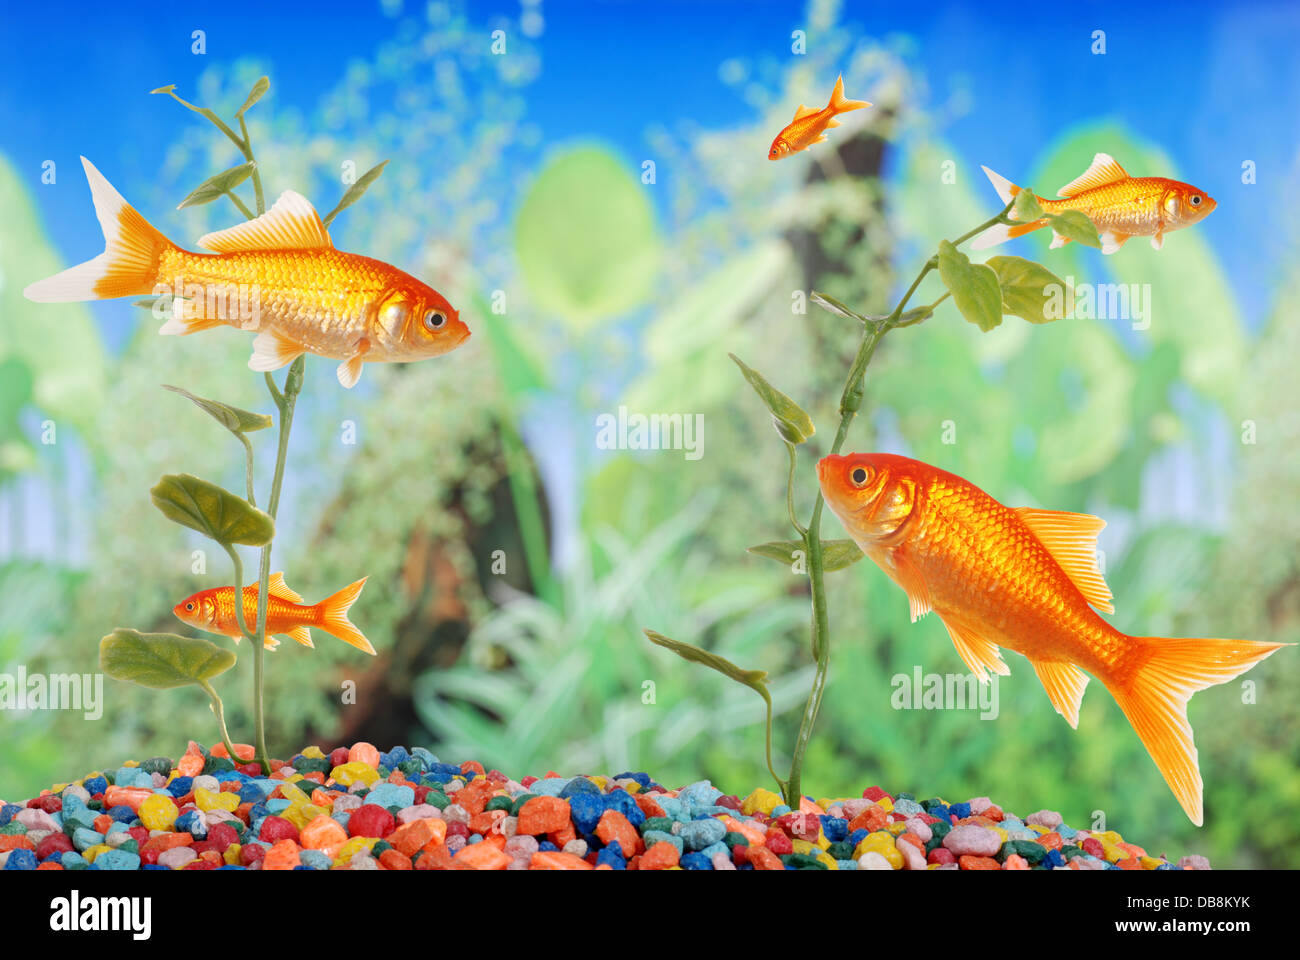 Fish in tank with goldfish - Stock Photo Fish Tank With Goldfish